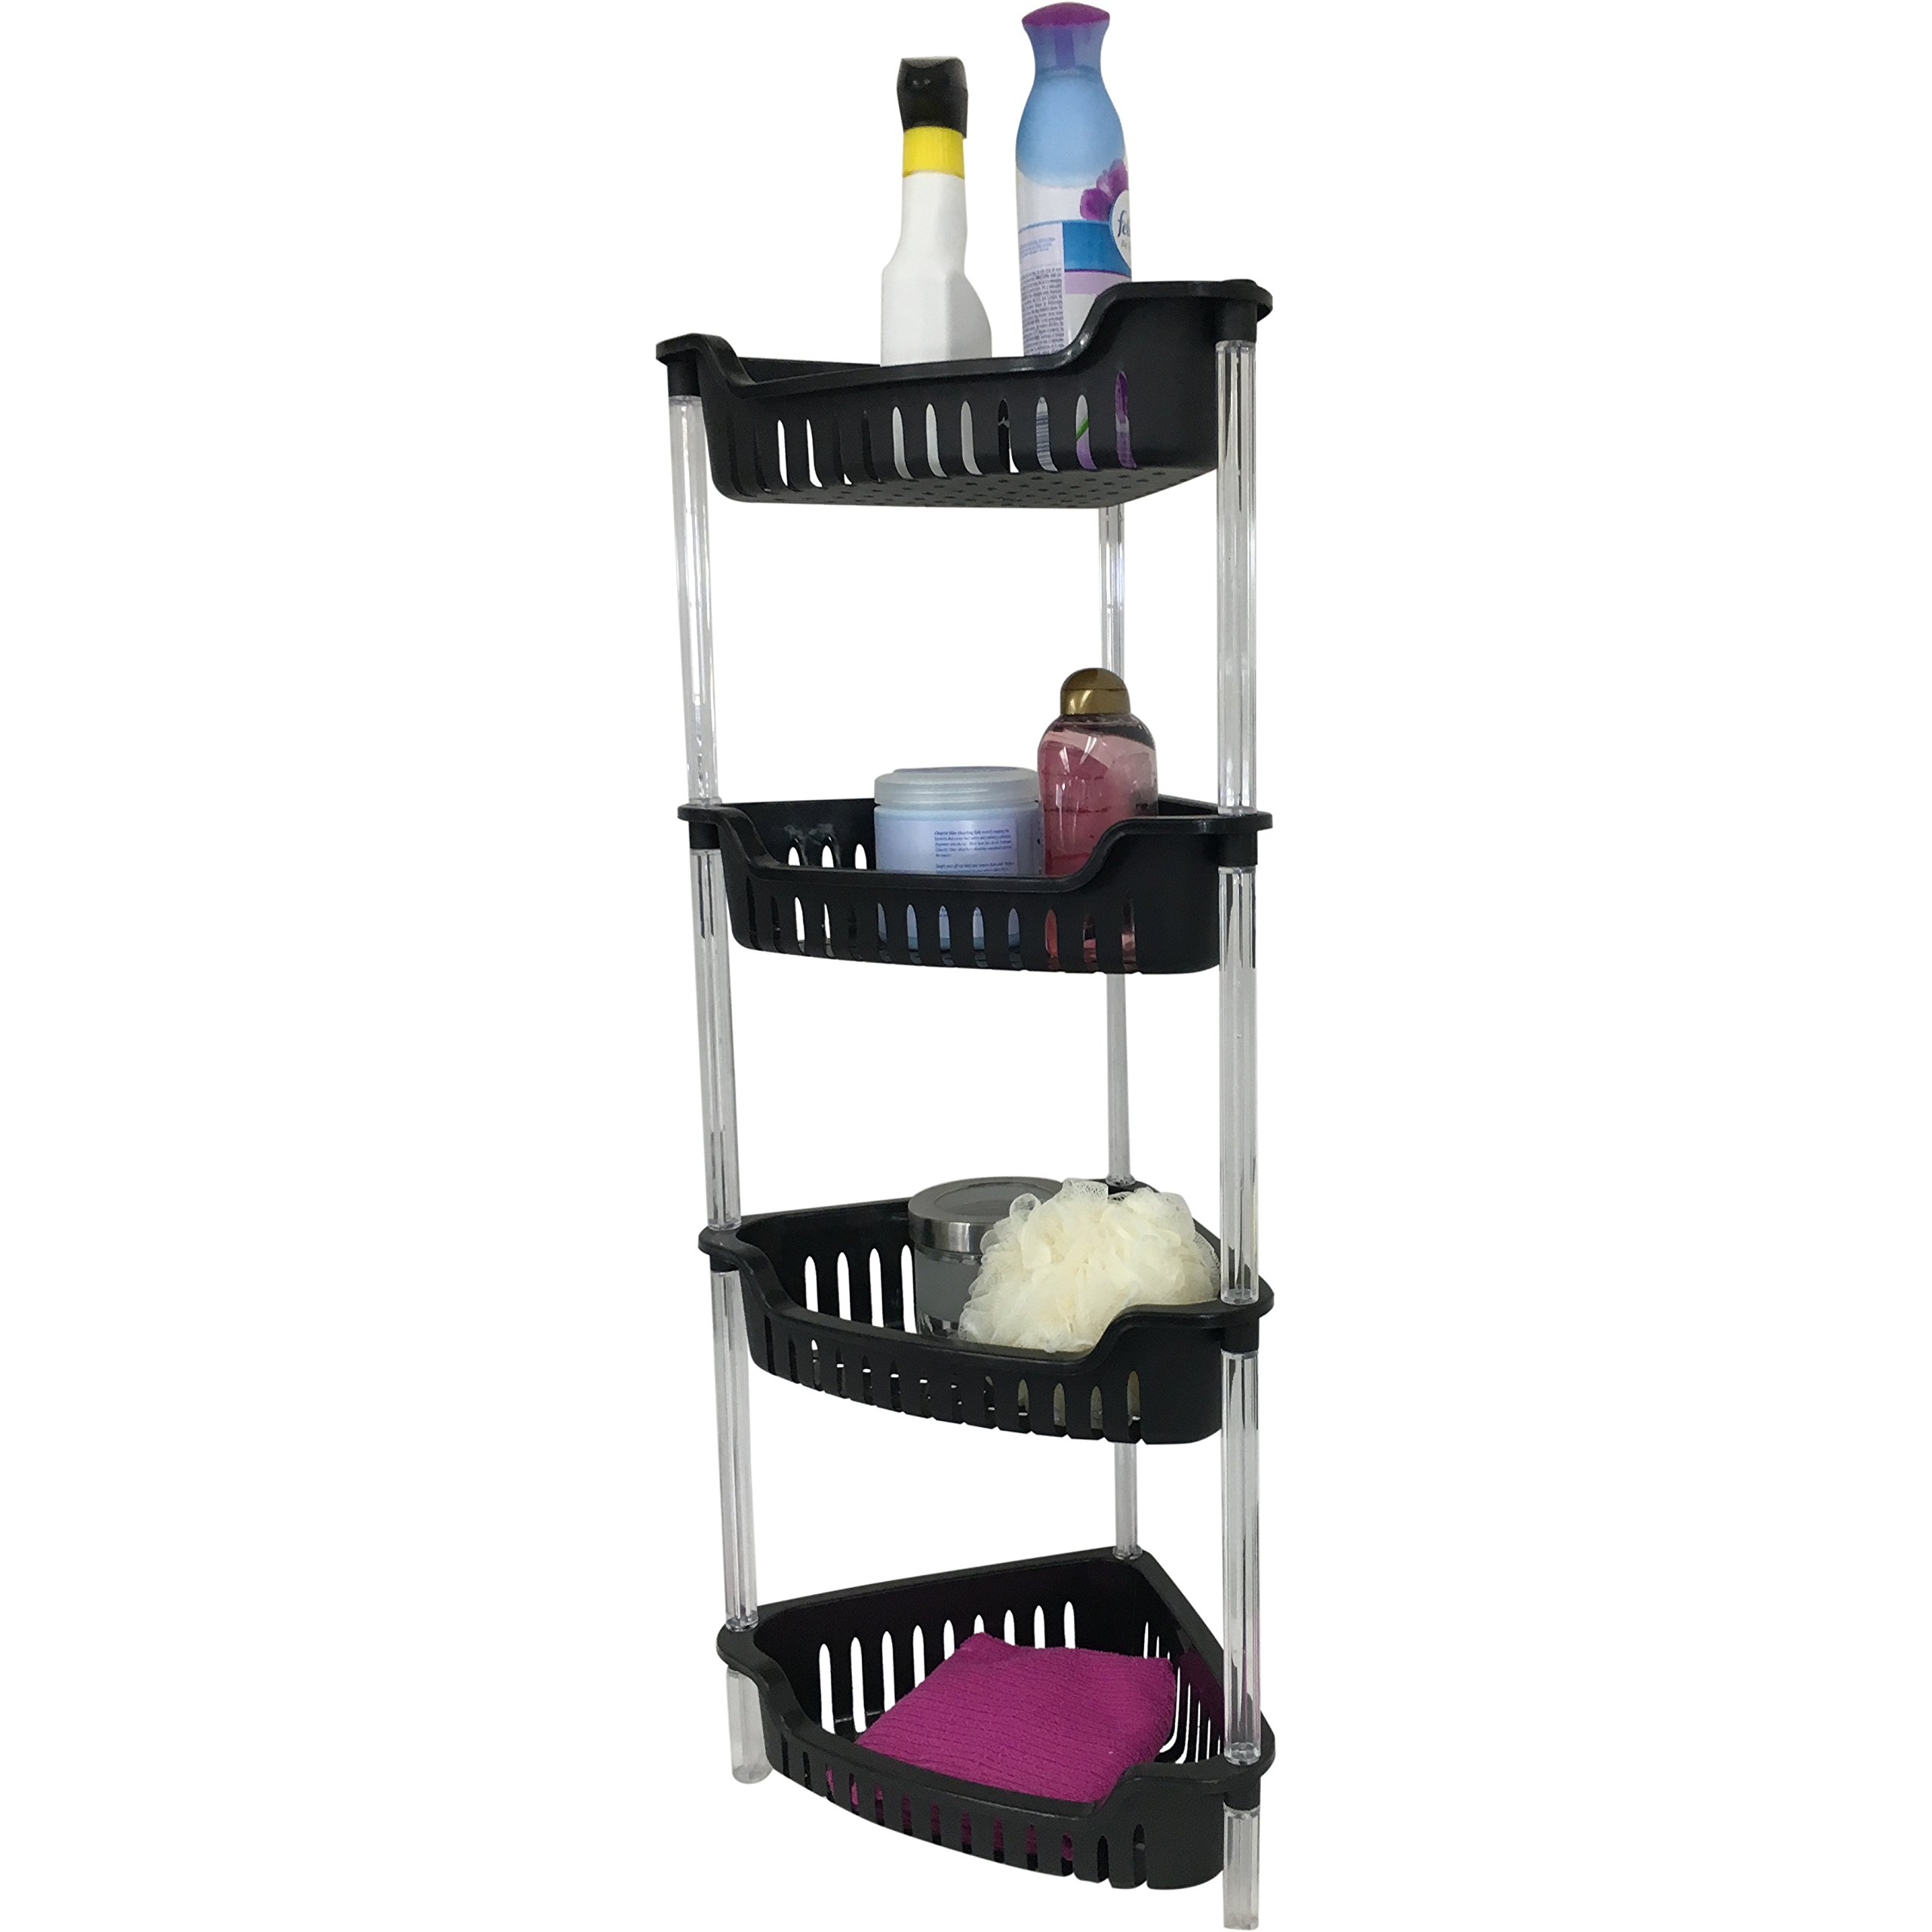 Corner Bathroom, Kitchen & Garage 4 Tier Basket Storage Shelving Unit By Above Edge – Durable, Water Resistant, Rust Proof Material – Ideal For Towels, Toilet Paper, Tissues, Shampoo Bottles by Above Edge